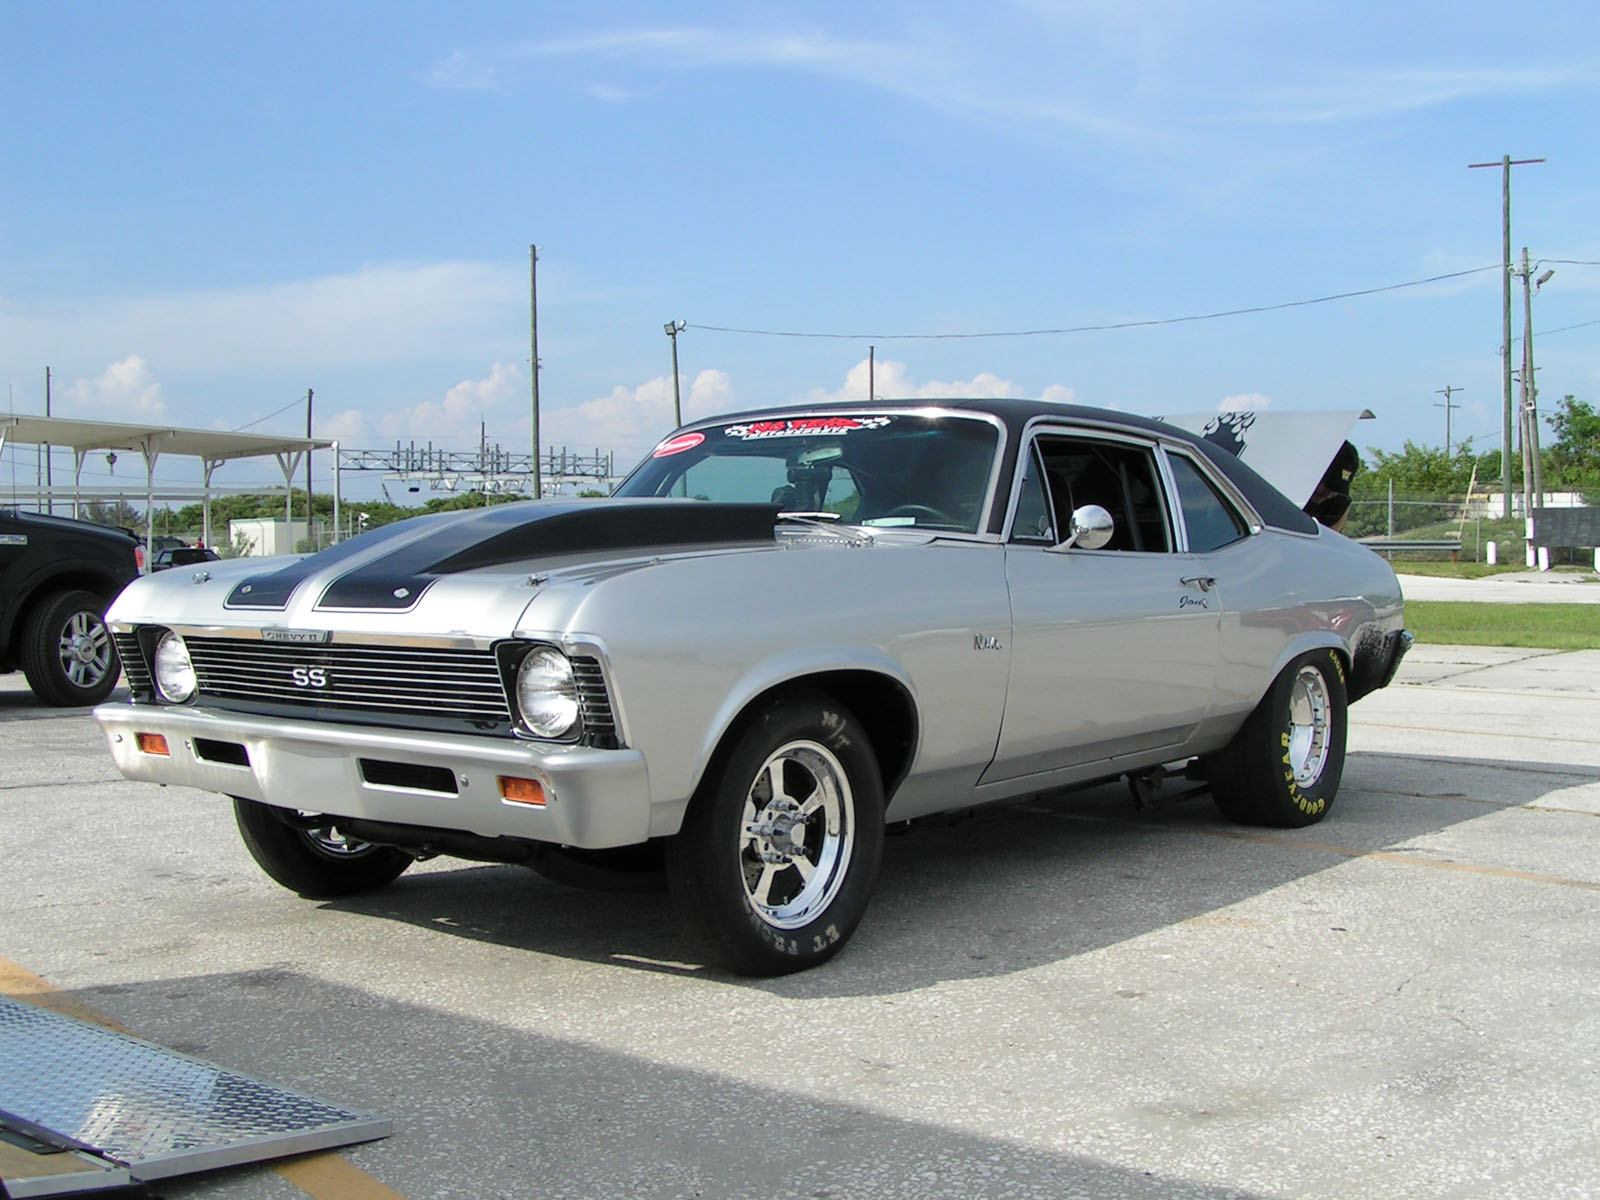 1969 Chevrolet Nova coupe